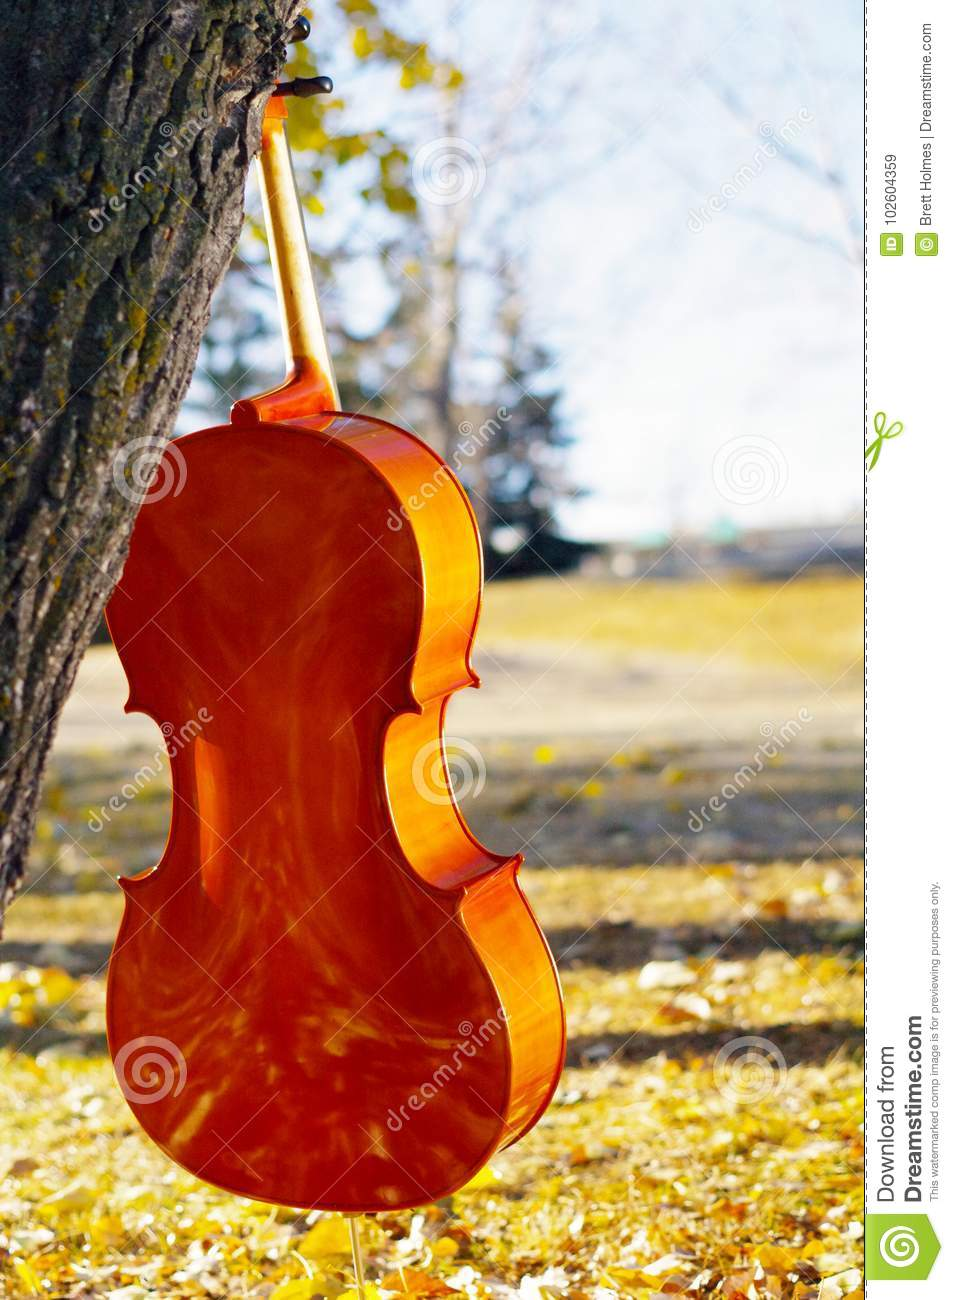 Cello outdoors in the park in fall autumn day with colourful lea